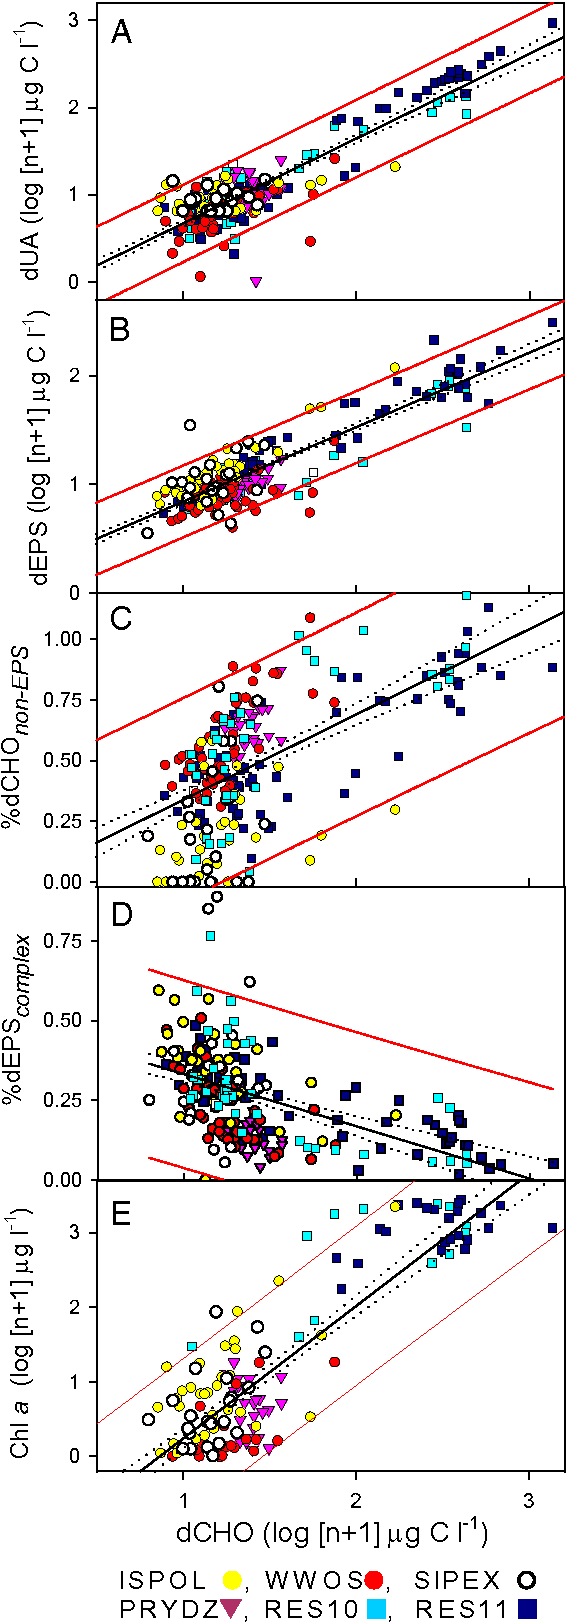 Fig. 3. Relationship between concentrations (μmol C L−1) of dCHO and (A) dUA, (B) dEPS, (C) the percent contribution of non-EPS carbohydrates to overall dCHO (%dCHOnon-EPS), (D) the percent contribution of complex EPS (%dEPScomplex), and (E) Chl a, in melted ice cores from four Antarctic (ISPOL, WWOS, SIPEX, PRYDZ) and two Arctic (RES10, RES11) datasets obtained between 2004 and 2011. Concentration data are log (n + 1) -transformed and percent data arcsin-transformed. Best-fit linear regression line (solid), error (dotted), and 95% confidence limits of regression (red lines) are shown for each relationship; regression details are in Table S4.